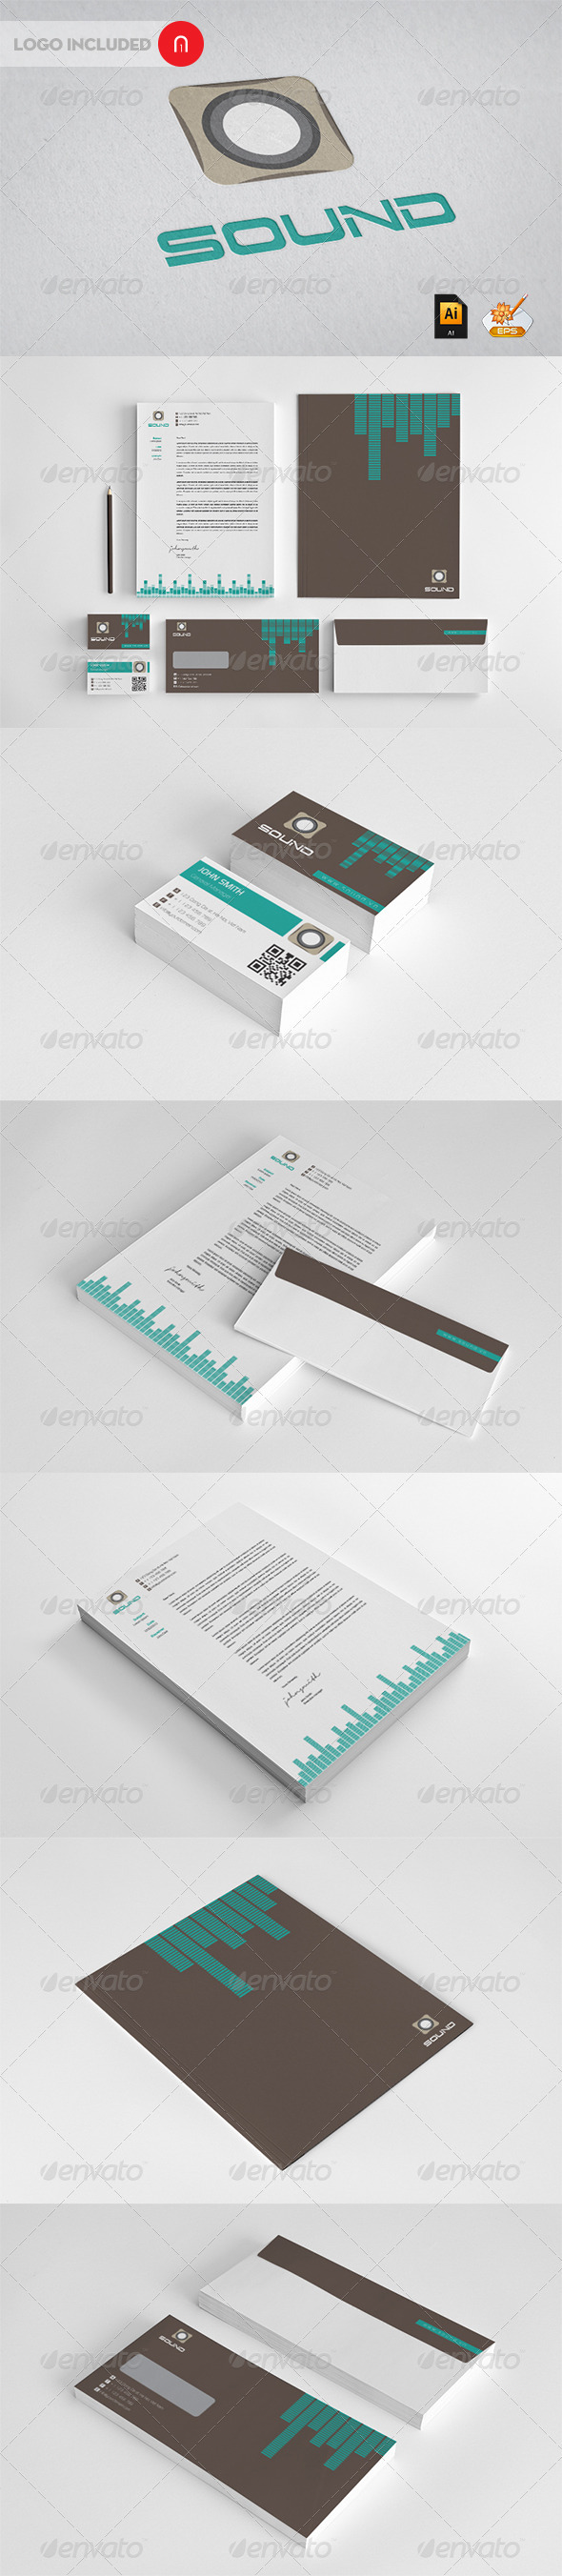 Sound Corporate Identity - Stationery Print Templates